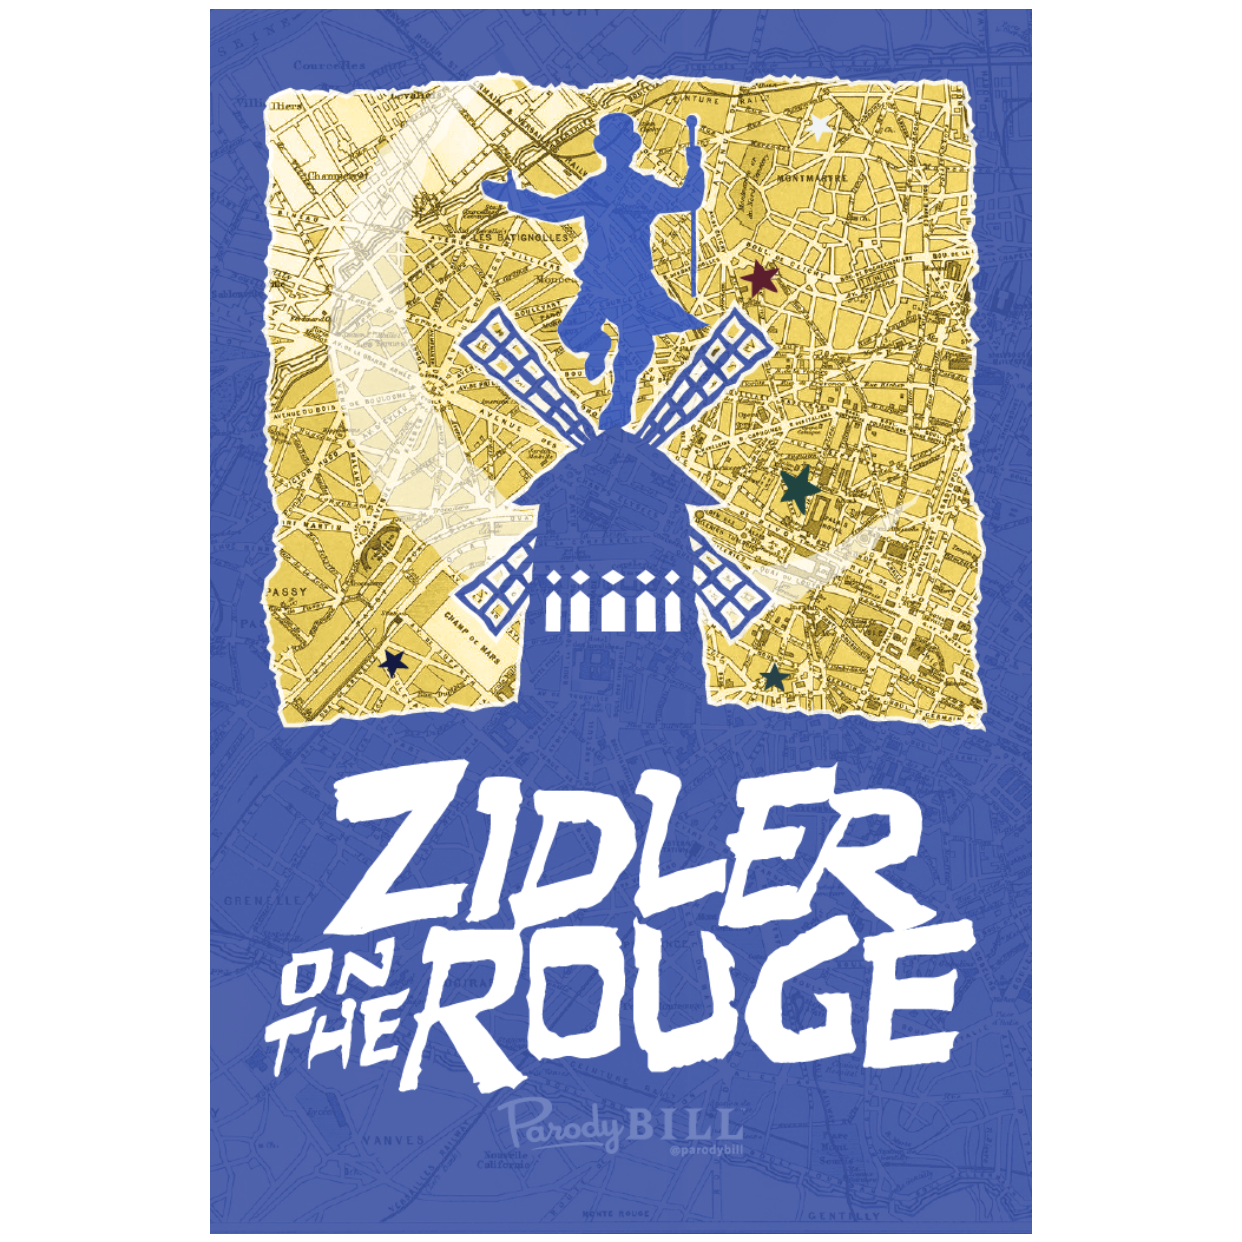 Zidler on the Rouge Collectible Card